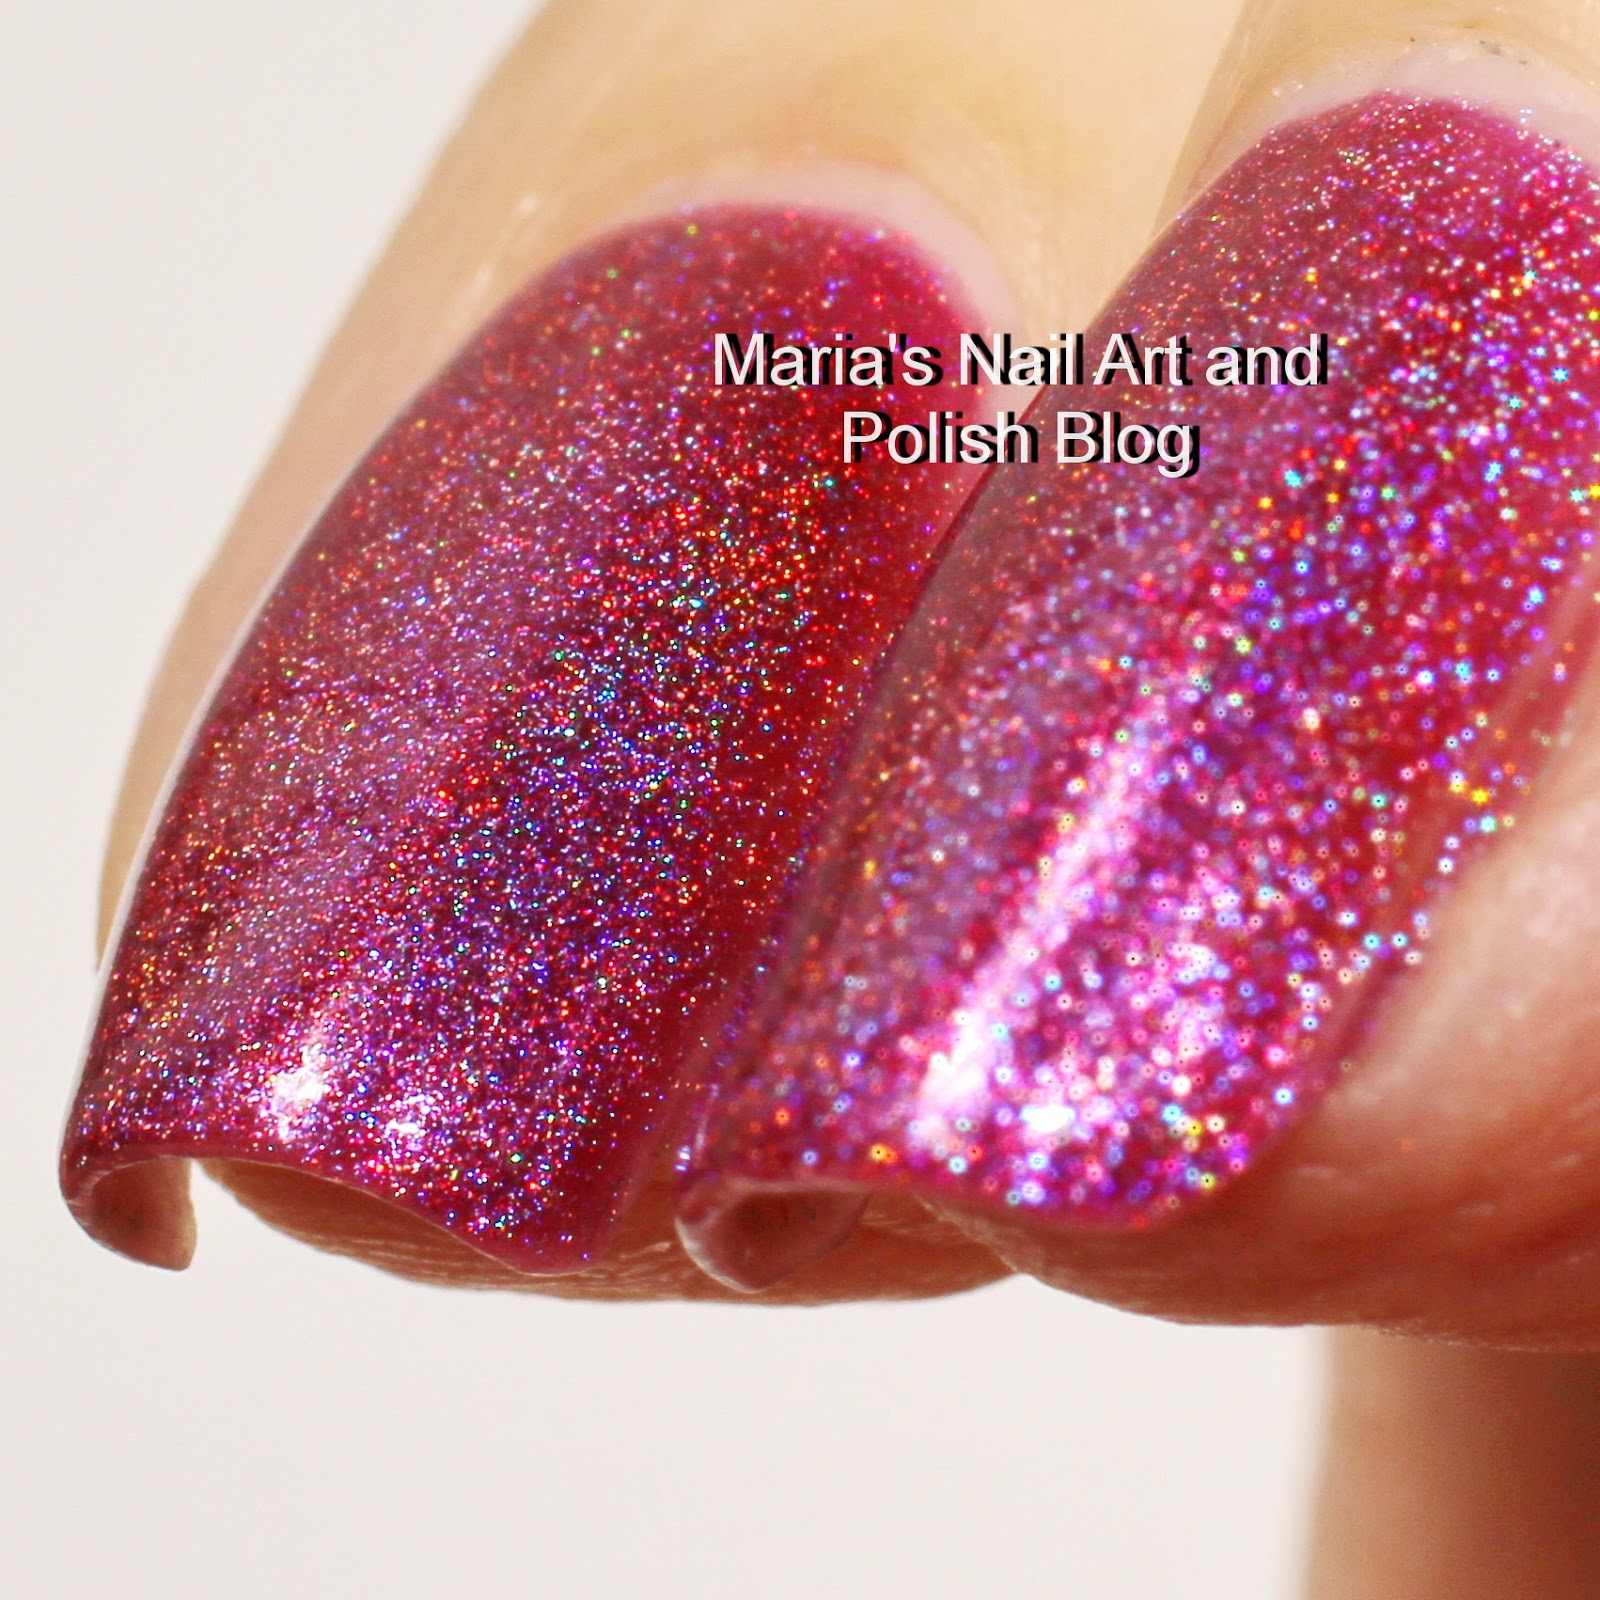 Marias Nail Art And Polish Blog Flushed With Stripes And: Marias Nail Art And Polish Blog: Celestial Cosmetics Red